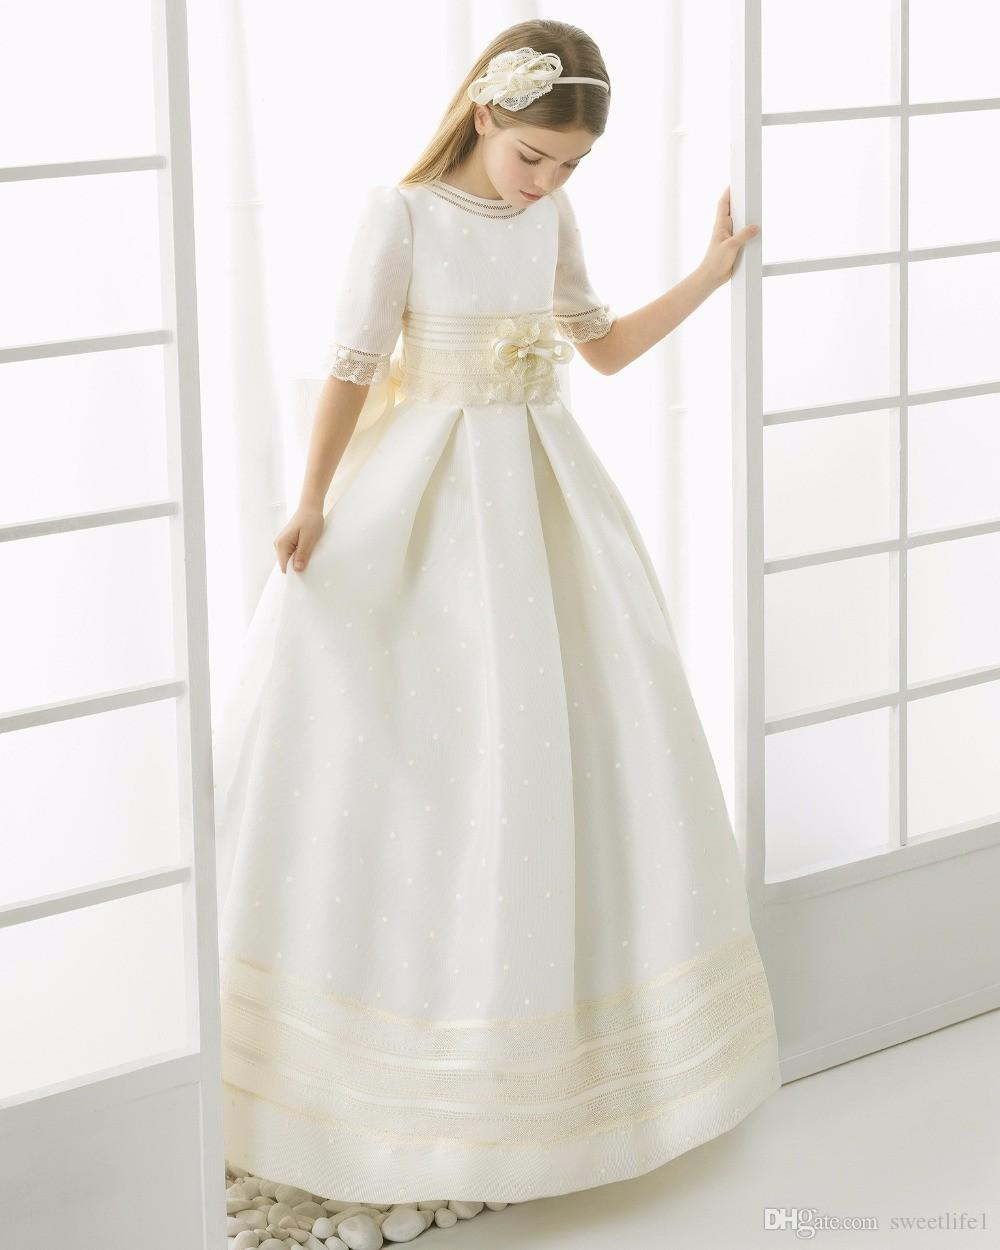 2019 First Communion Dresses For Girls Satin Lace Ball Gown Half Sleeve Flower Girl Dresses For Weddings Girls Pageant Dresses